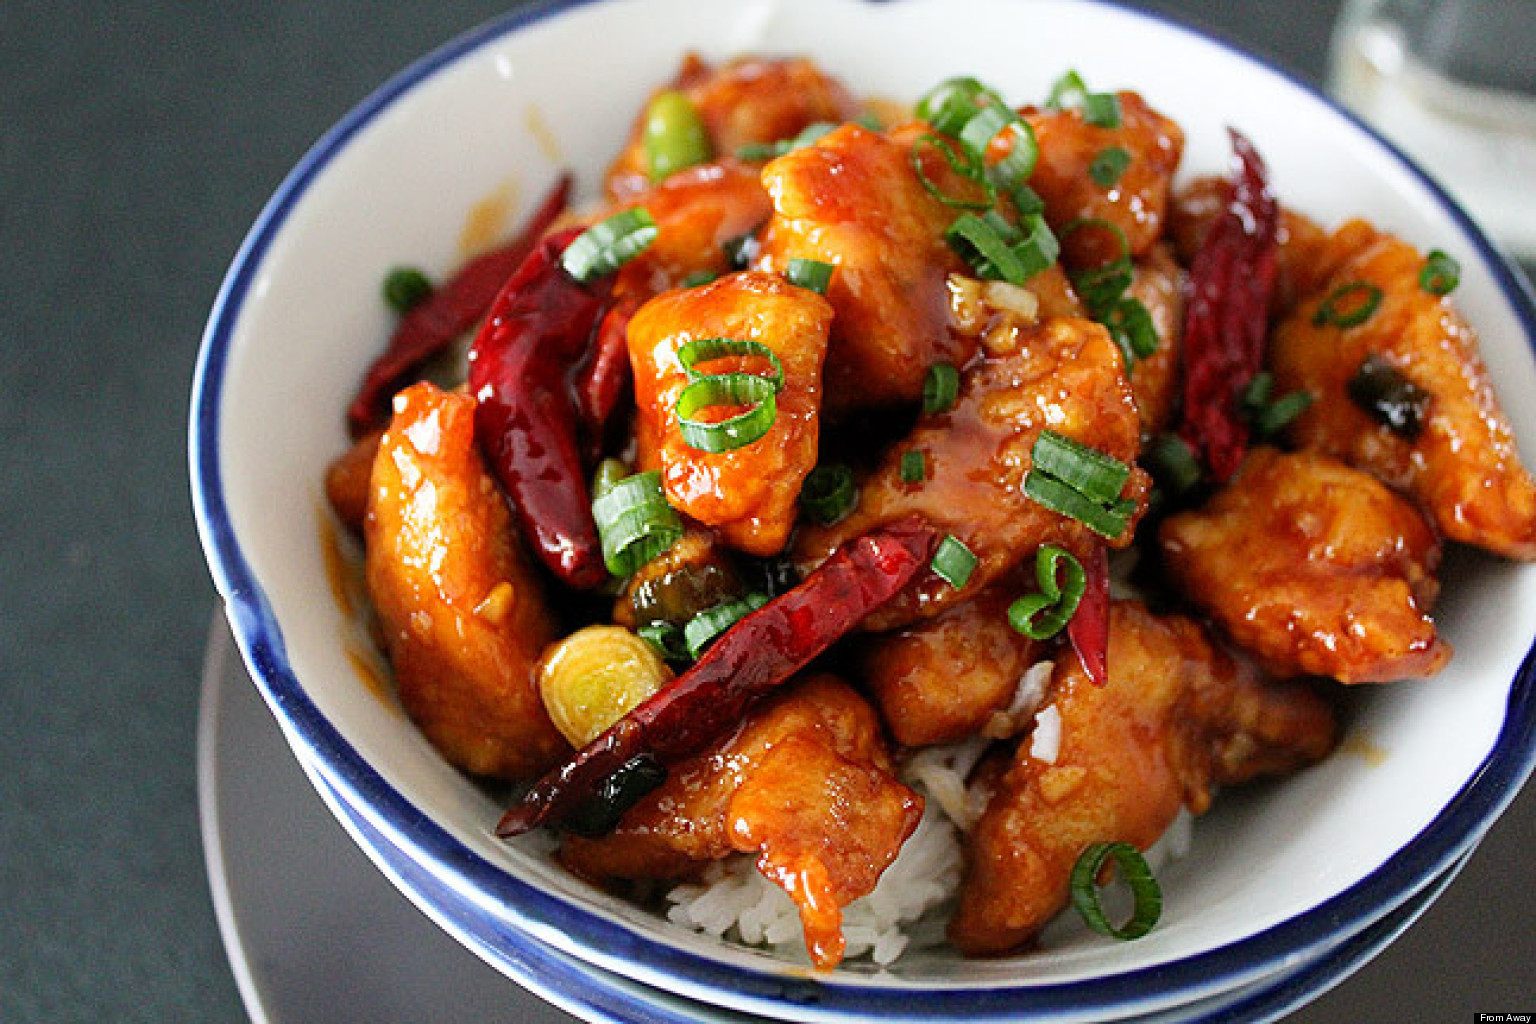 Asian Dinner Recipe  Chinese Takeout Recipes To Make At Home PHOTOS